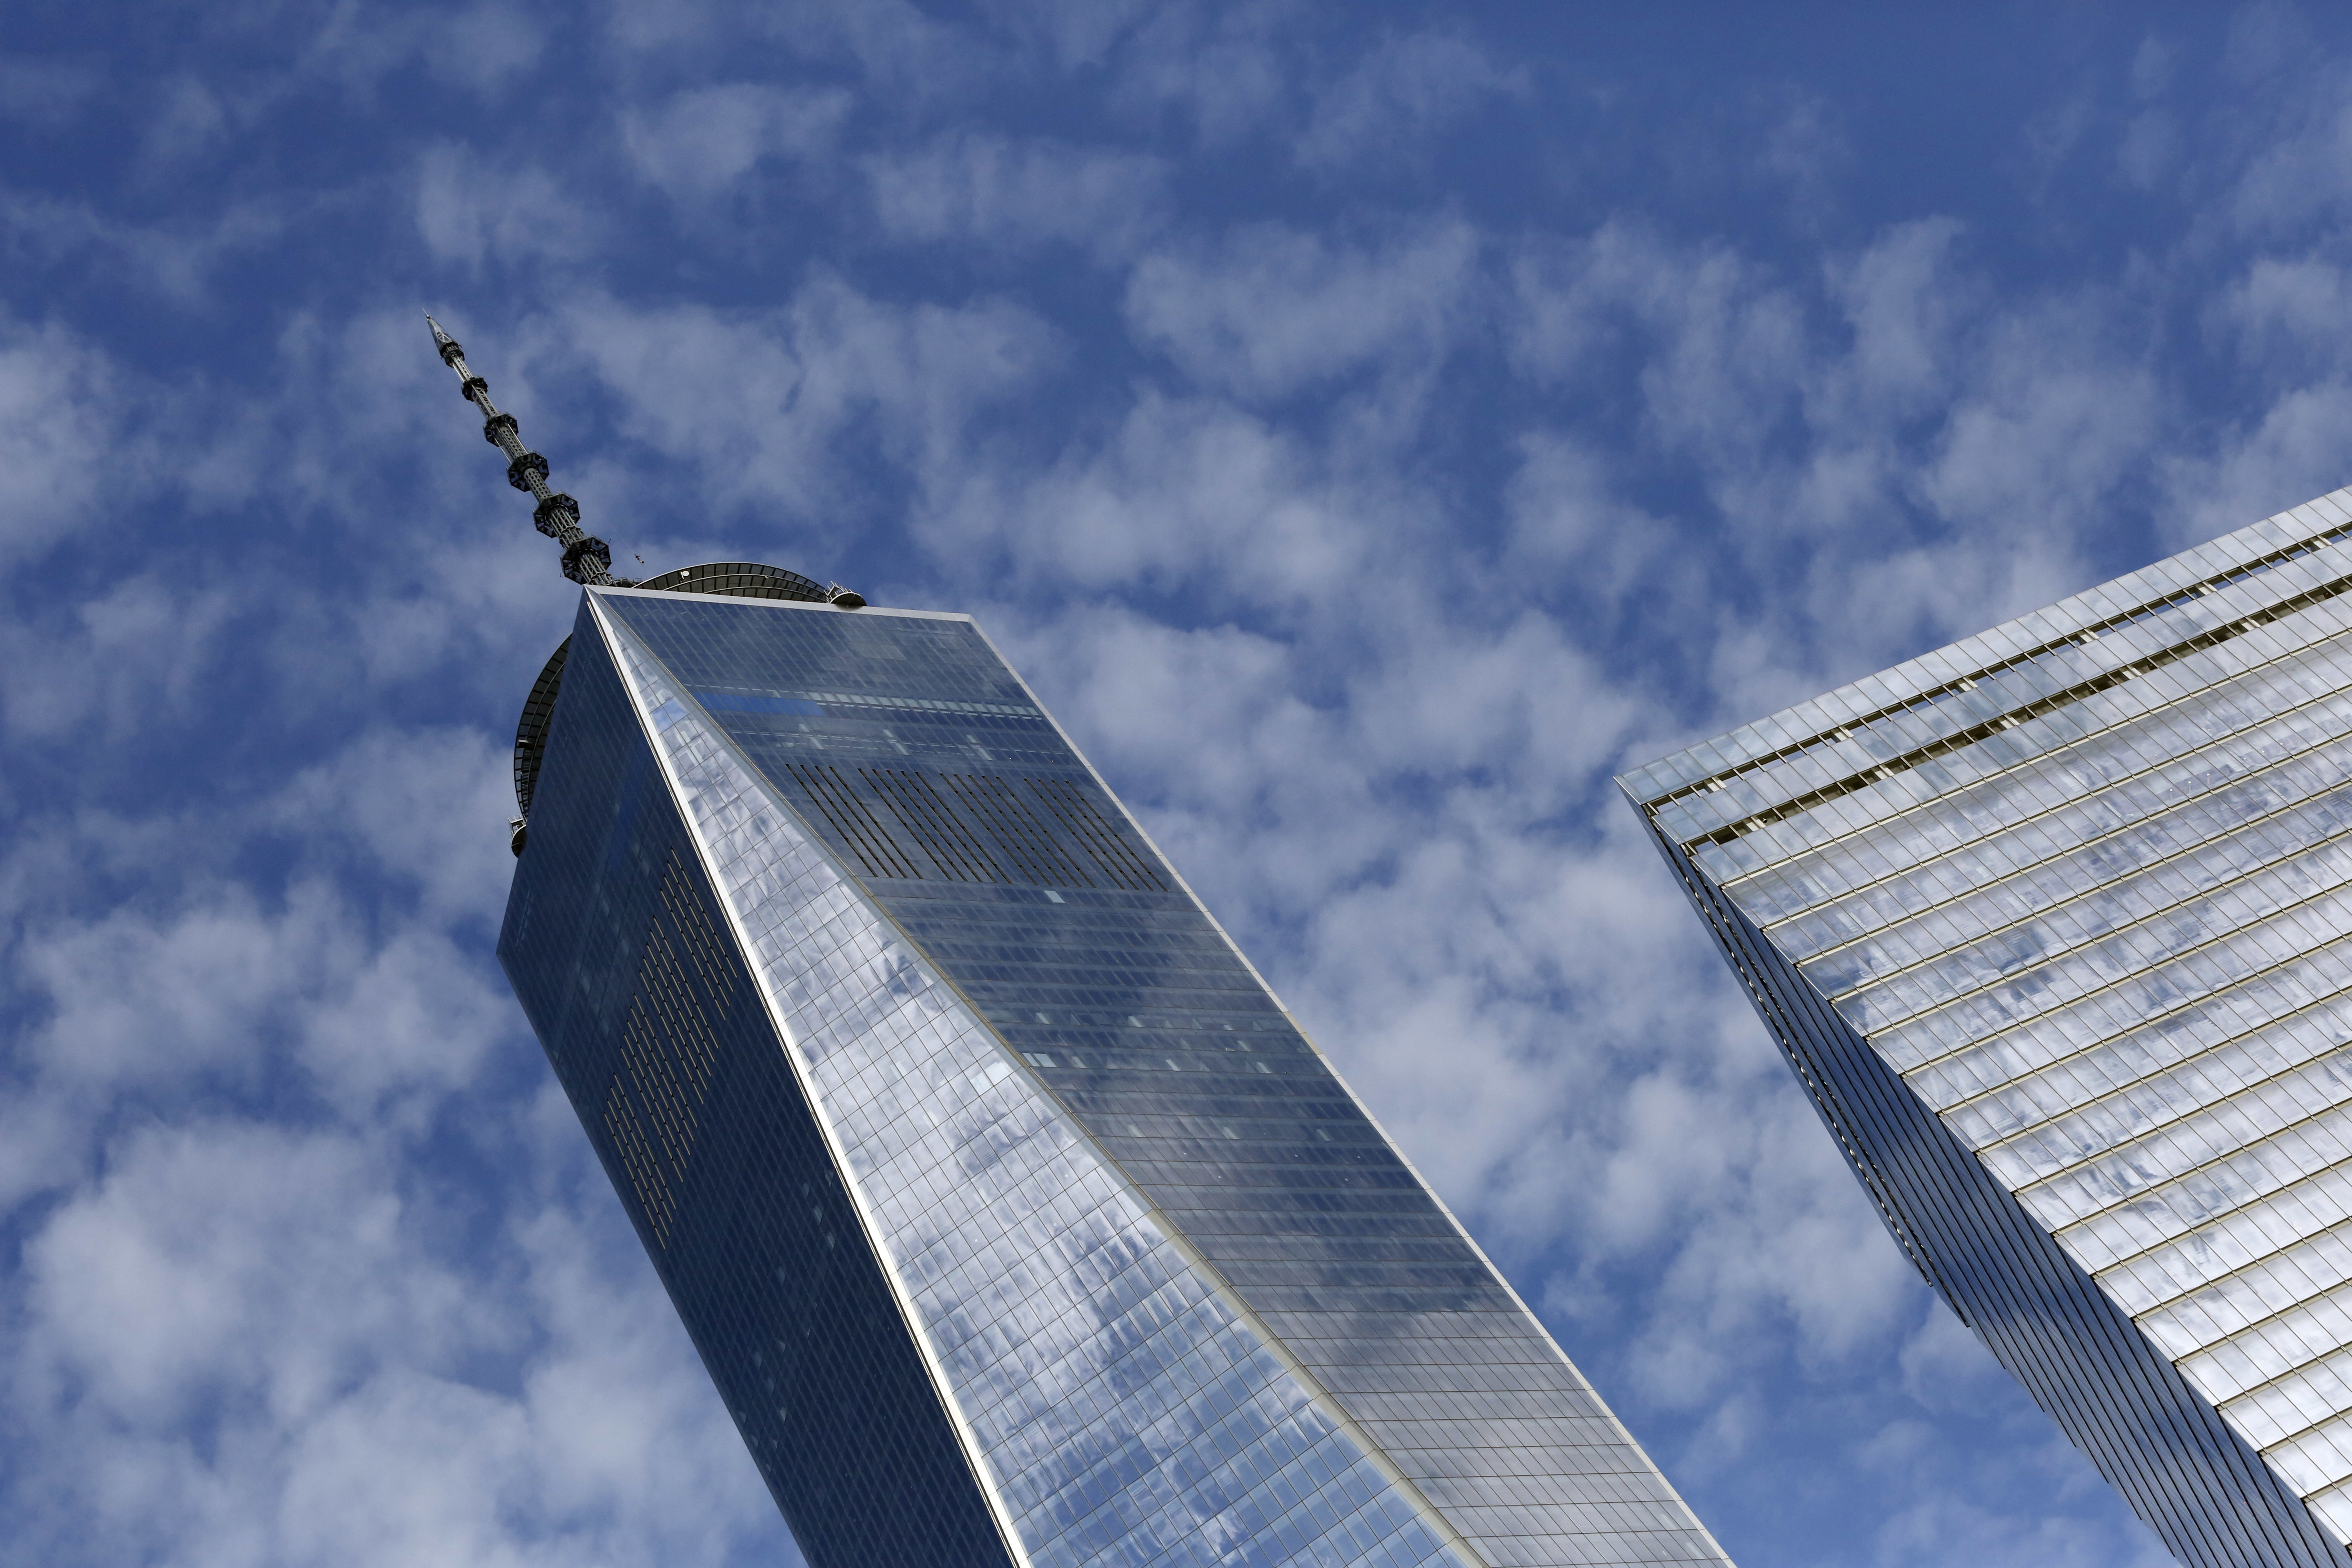 Financial Markets FILE - This Tuesday, Aug. 16, 2016, file photo shows One World Trade Center, left, and 7 World Trade Center, in New York. Technology companies were leading a broad slide in U.S. stocks in early trading Thursday, Aug. 10, 2017, as investors pored over the latest batch of corporate earnings reports. (AP Photo/Mark Lennihan, File)